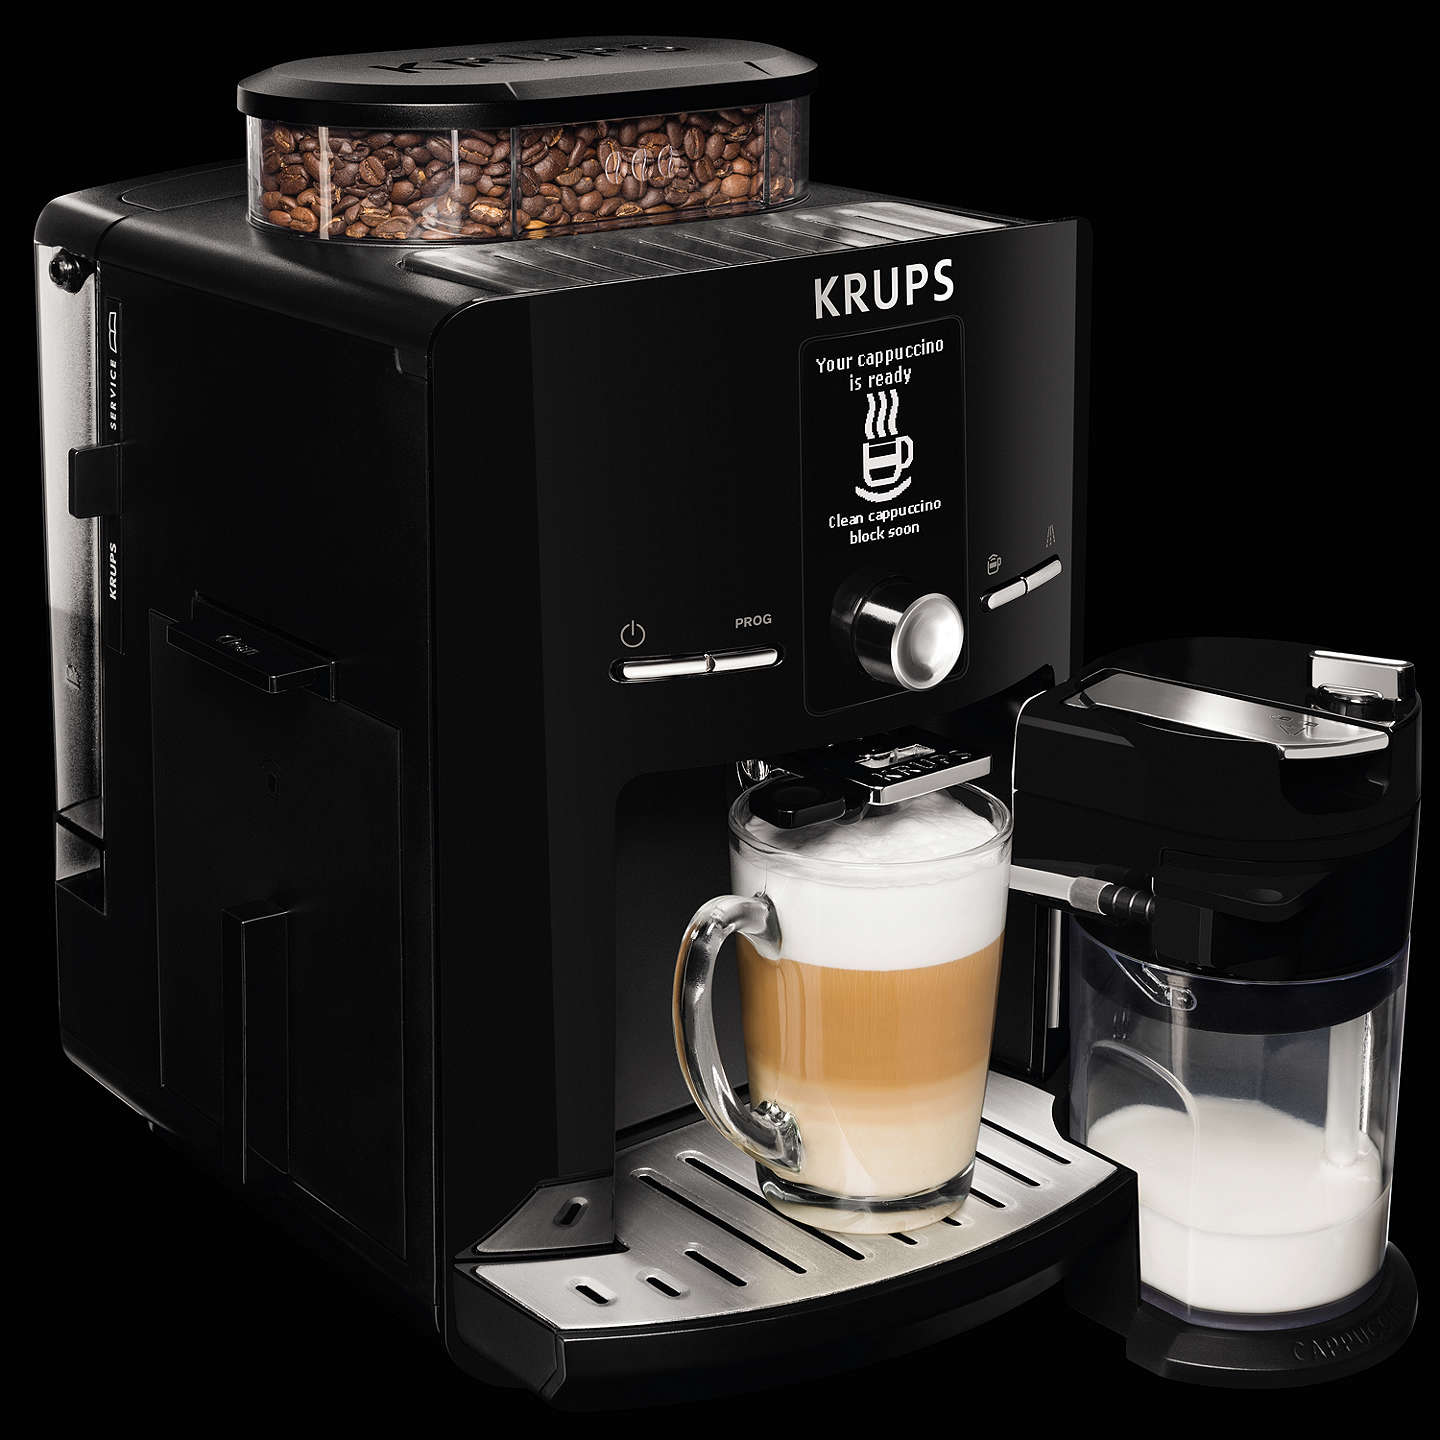 Buykrups Ea8298 Espresseria Bean To Cup Coffee Machine, Black Online At Johnlewis